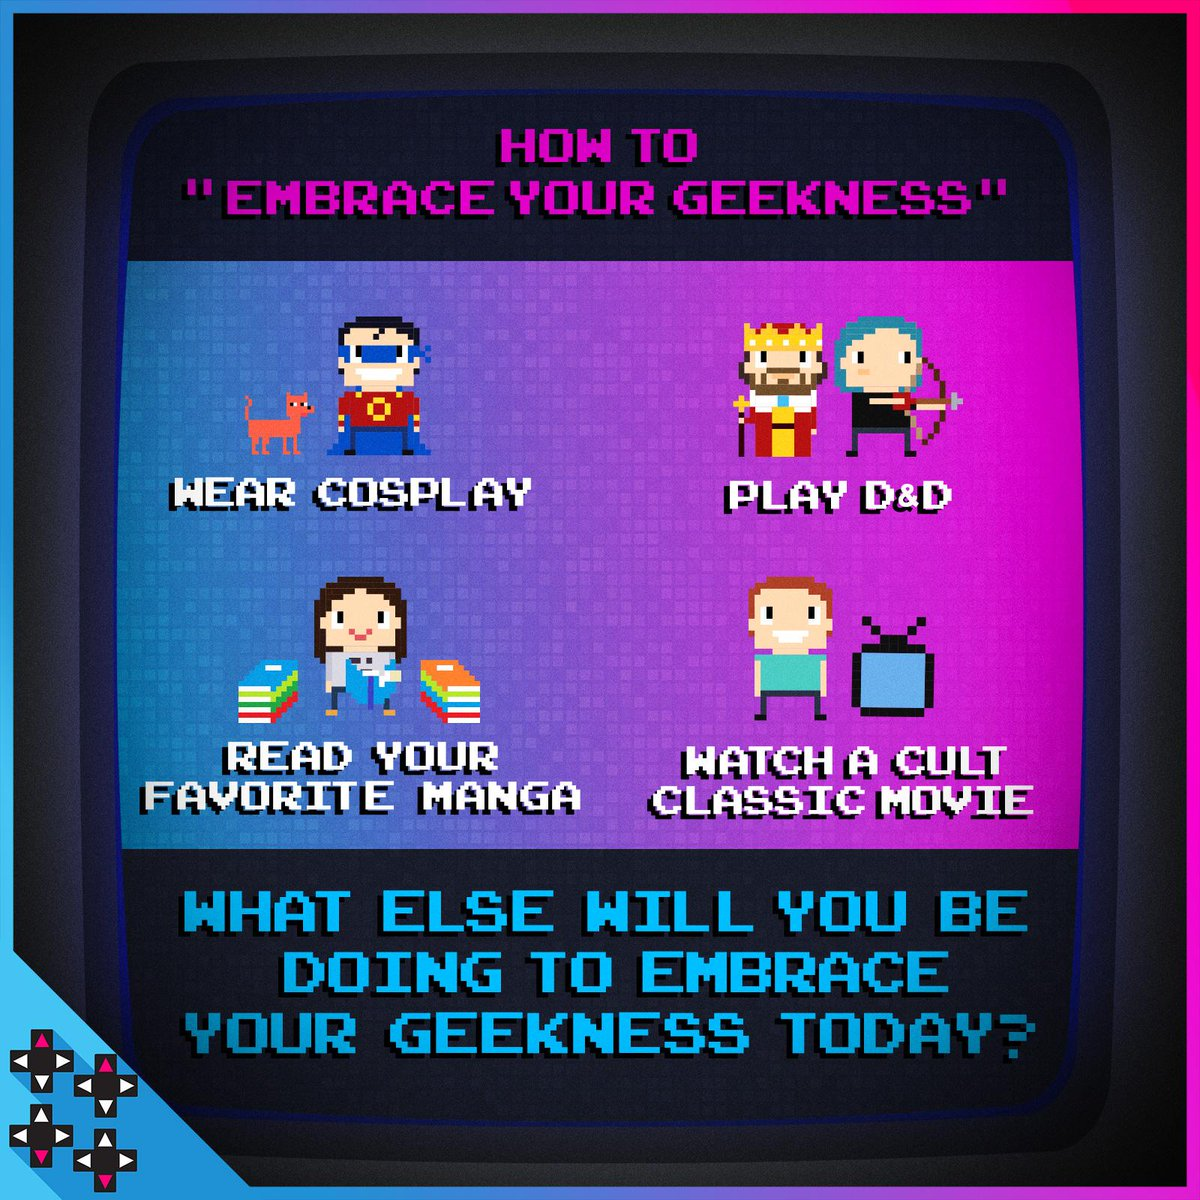 How do you #EmbraceYourGeeknes?! Tell us in the comments! 👇